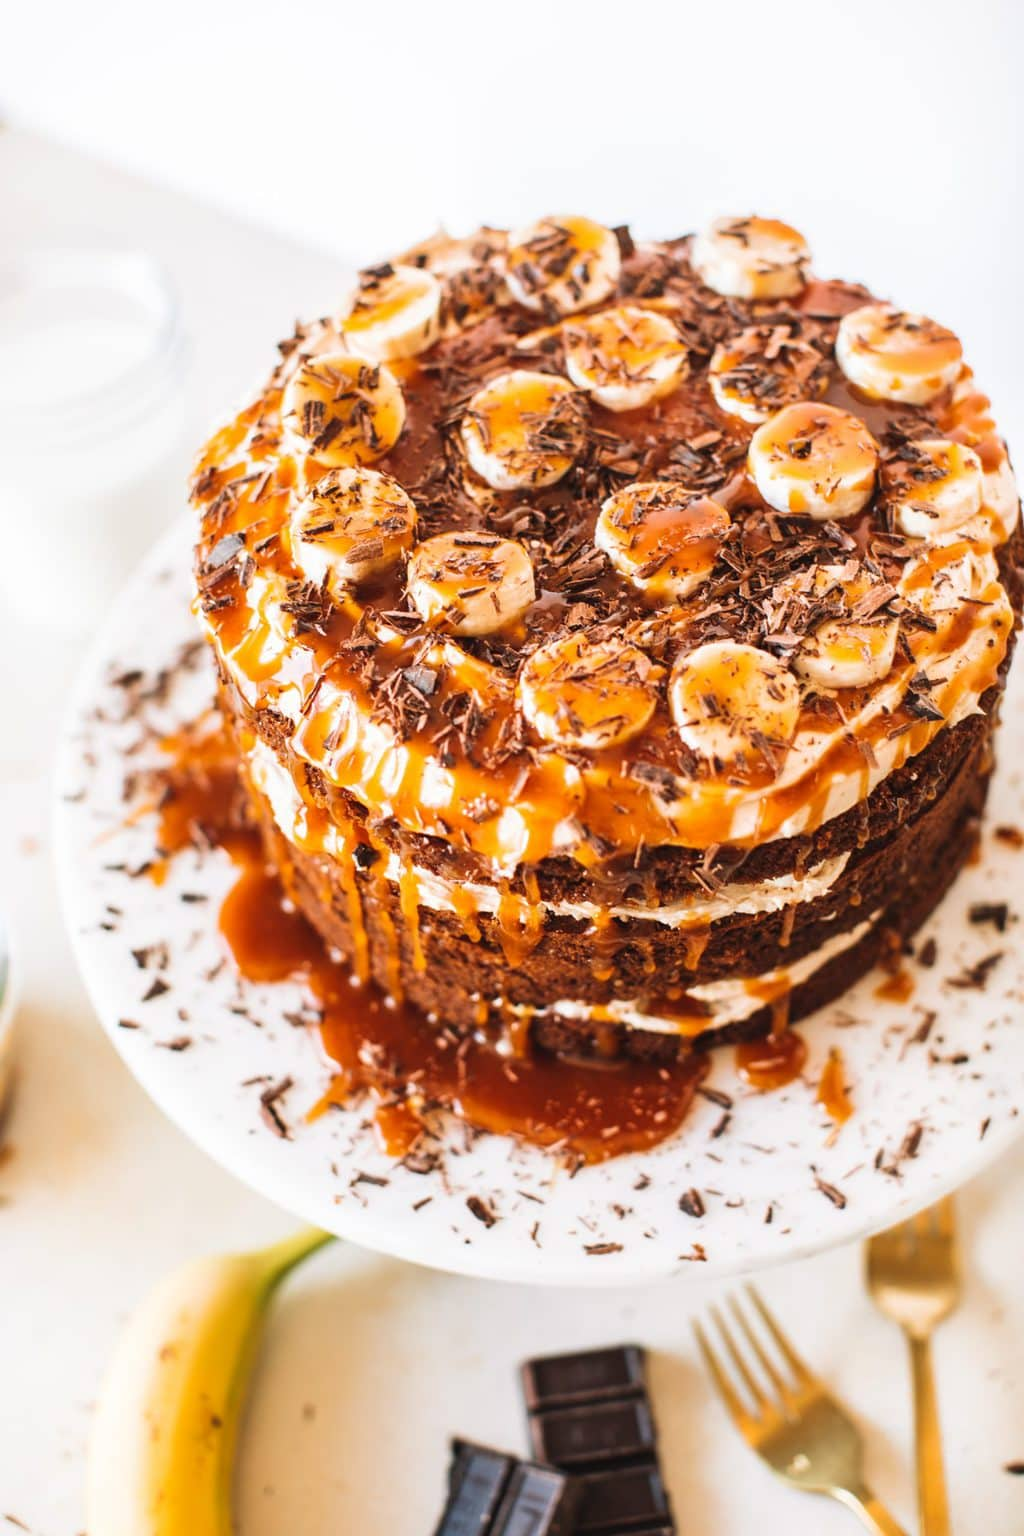 Top shot of cake with caramel and bananas on top, sitting on cake stand.